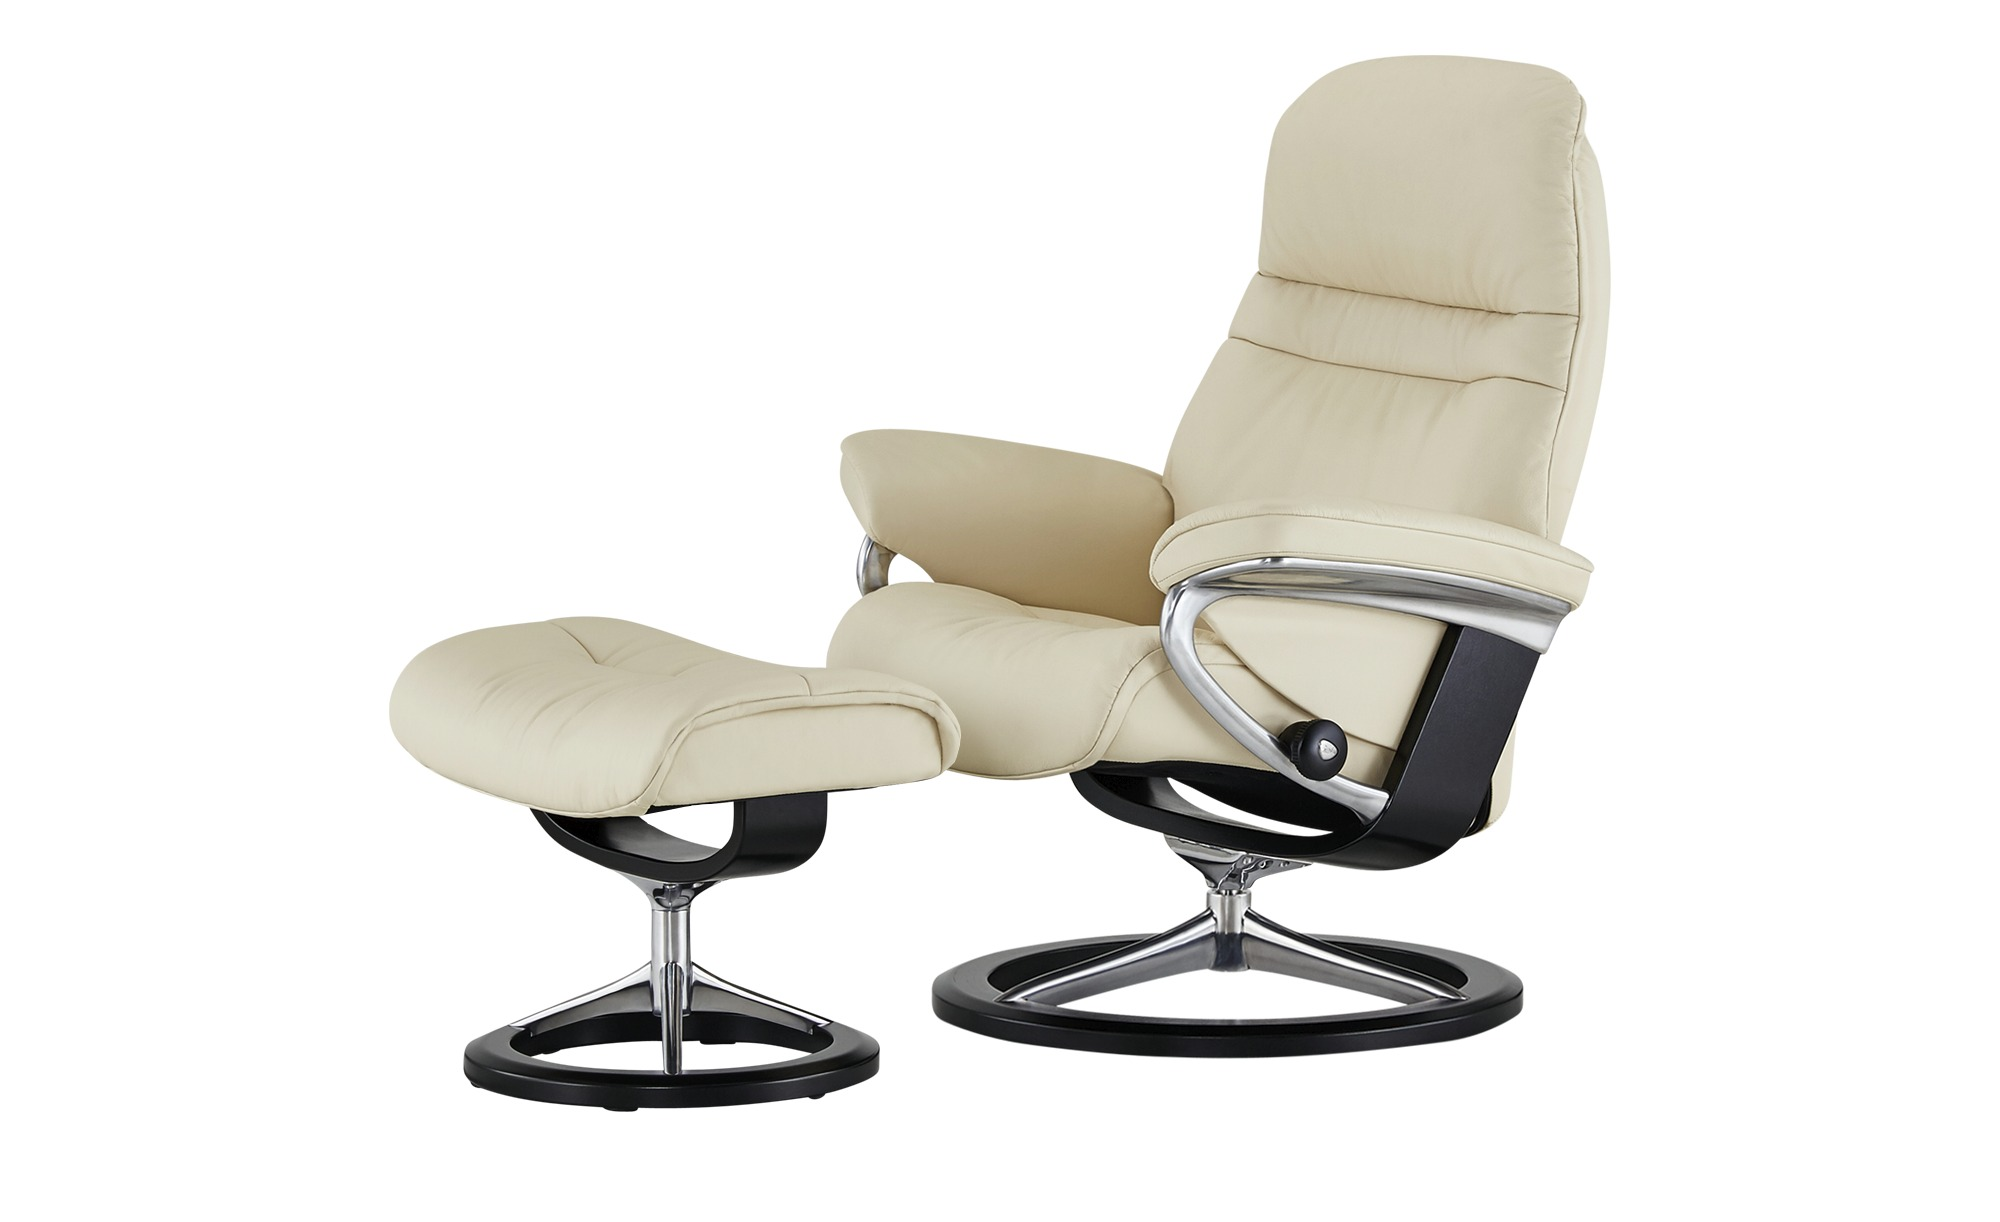 Stressless Sessel Inkl. Hocker Modell Sunrise (m) Classic Ekornes Sessel Cheap Stressless Sessel Consul Mit Hocker With